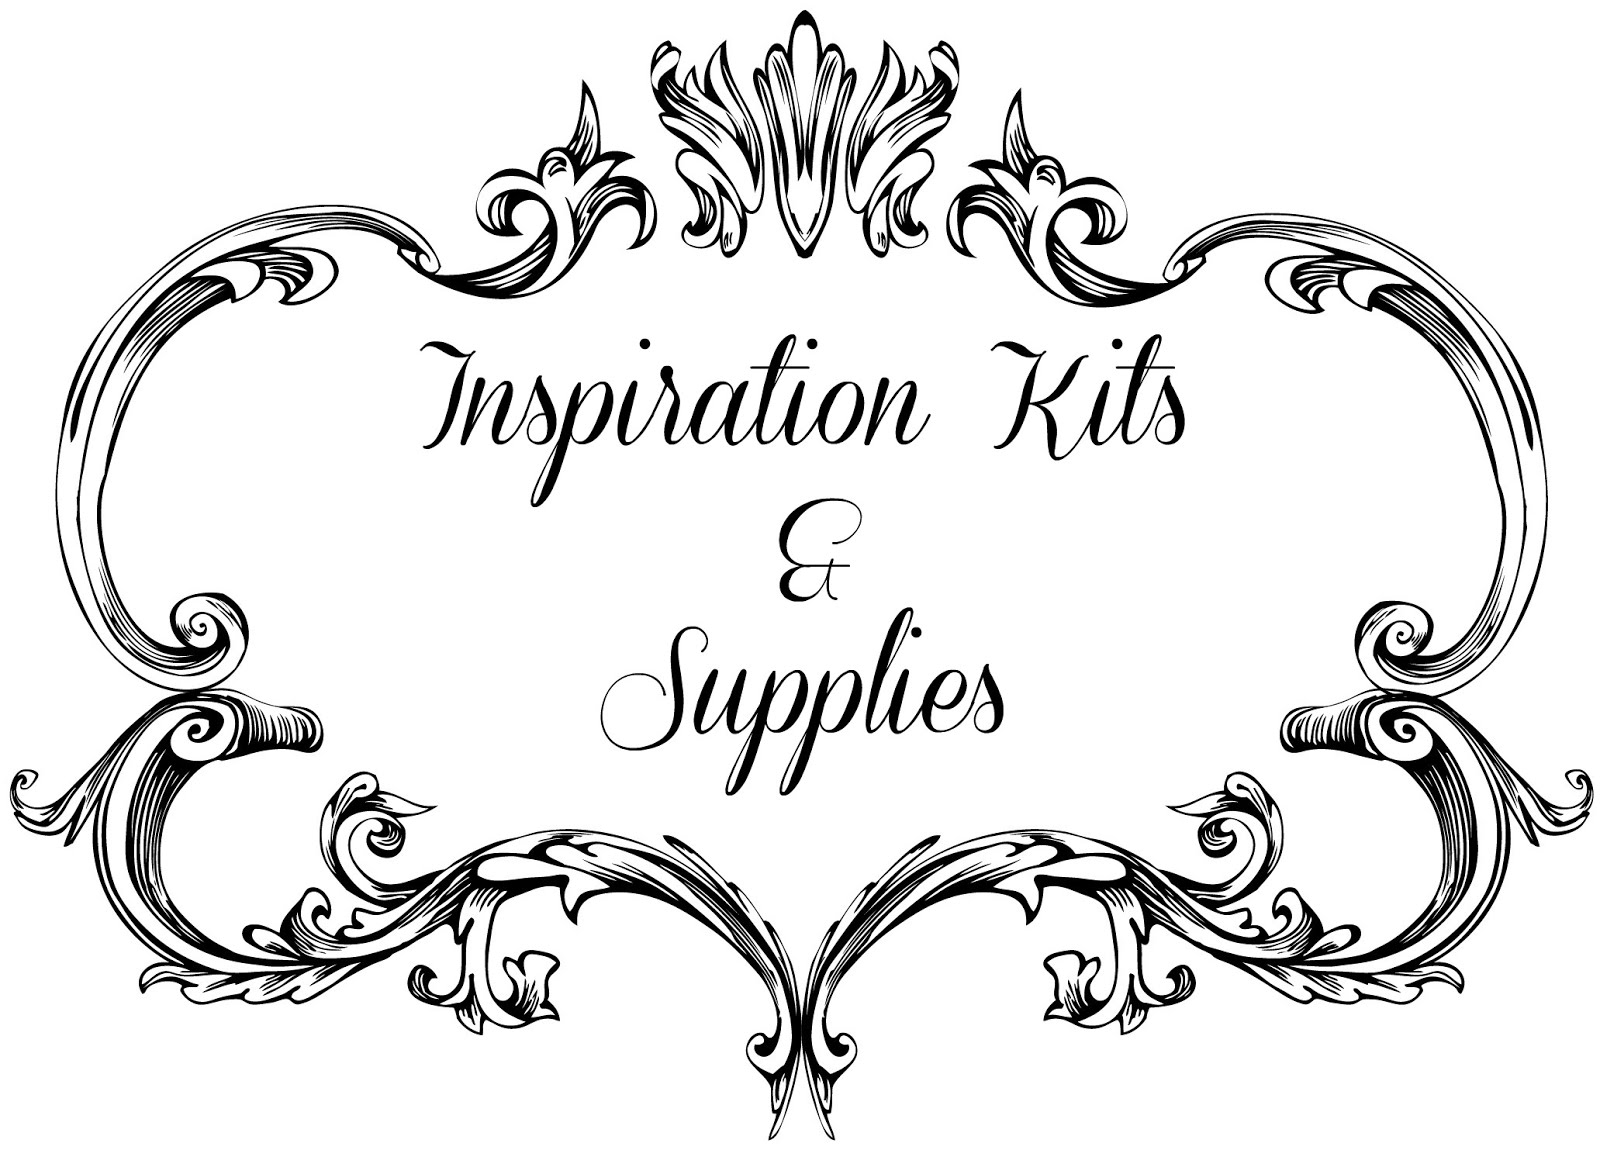 Inspiration Kits & Supplies